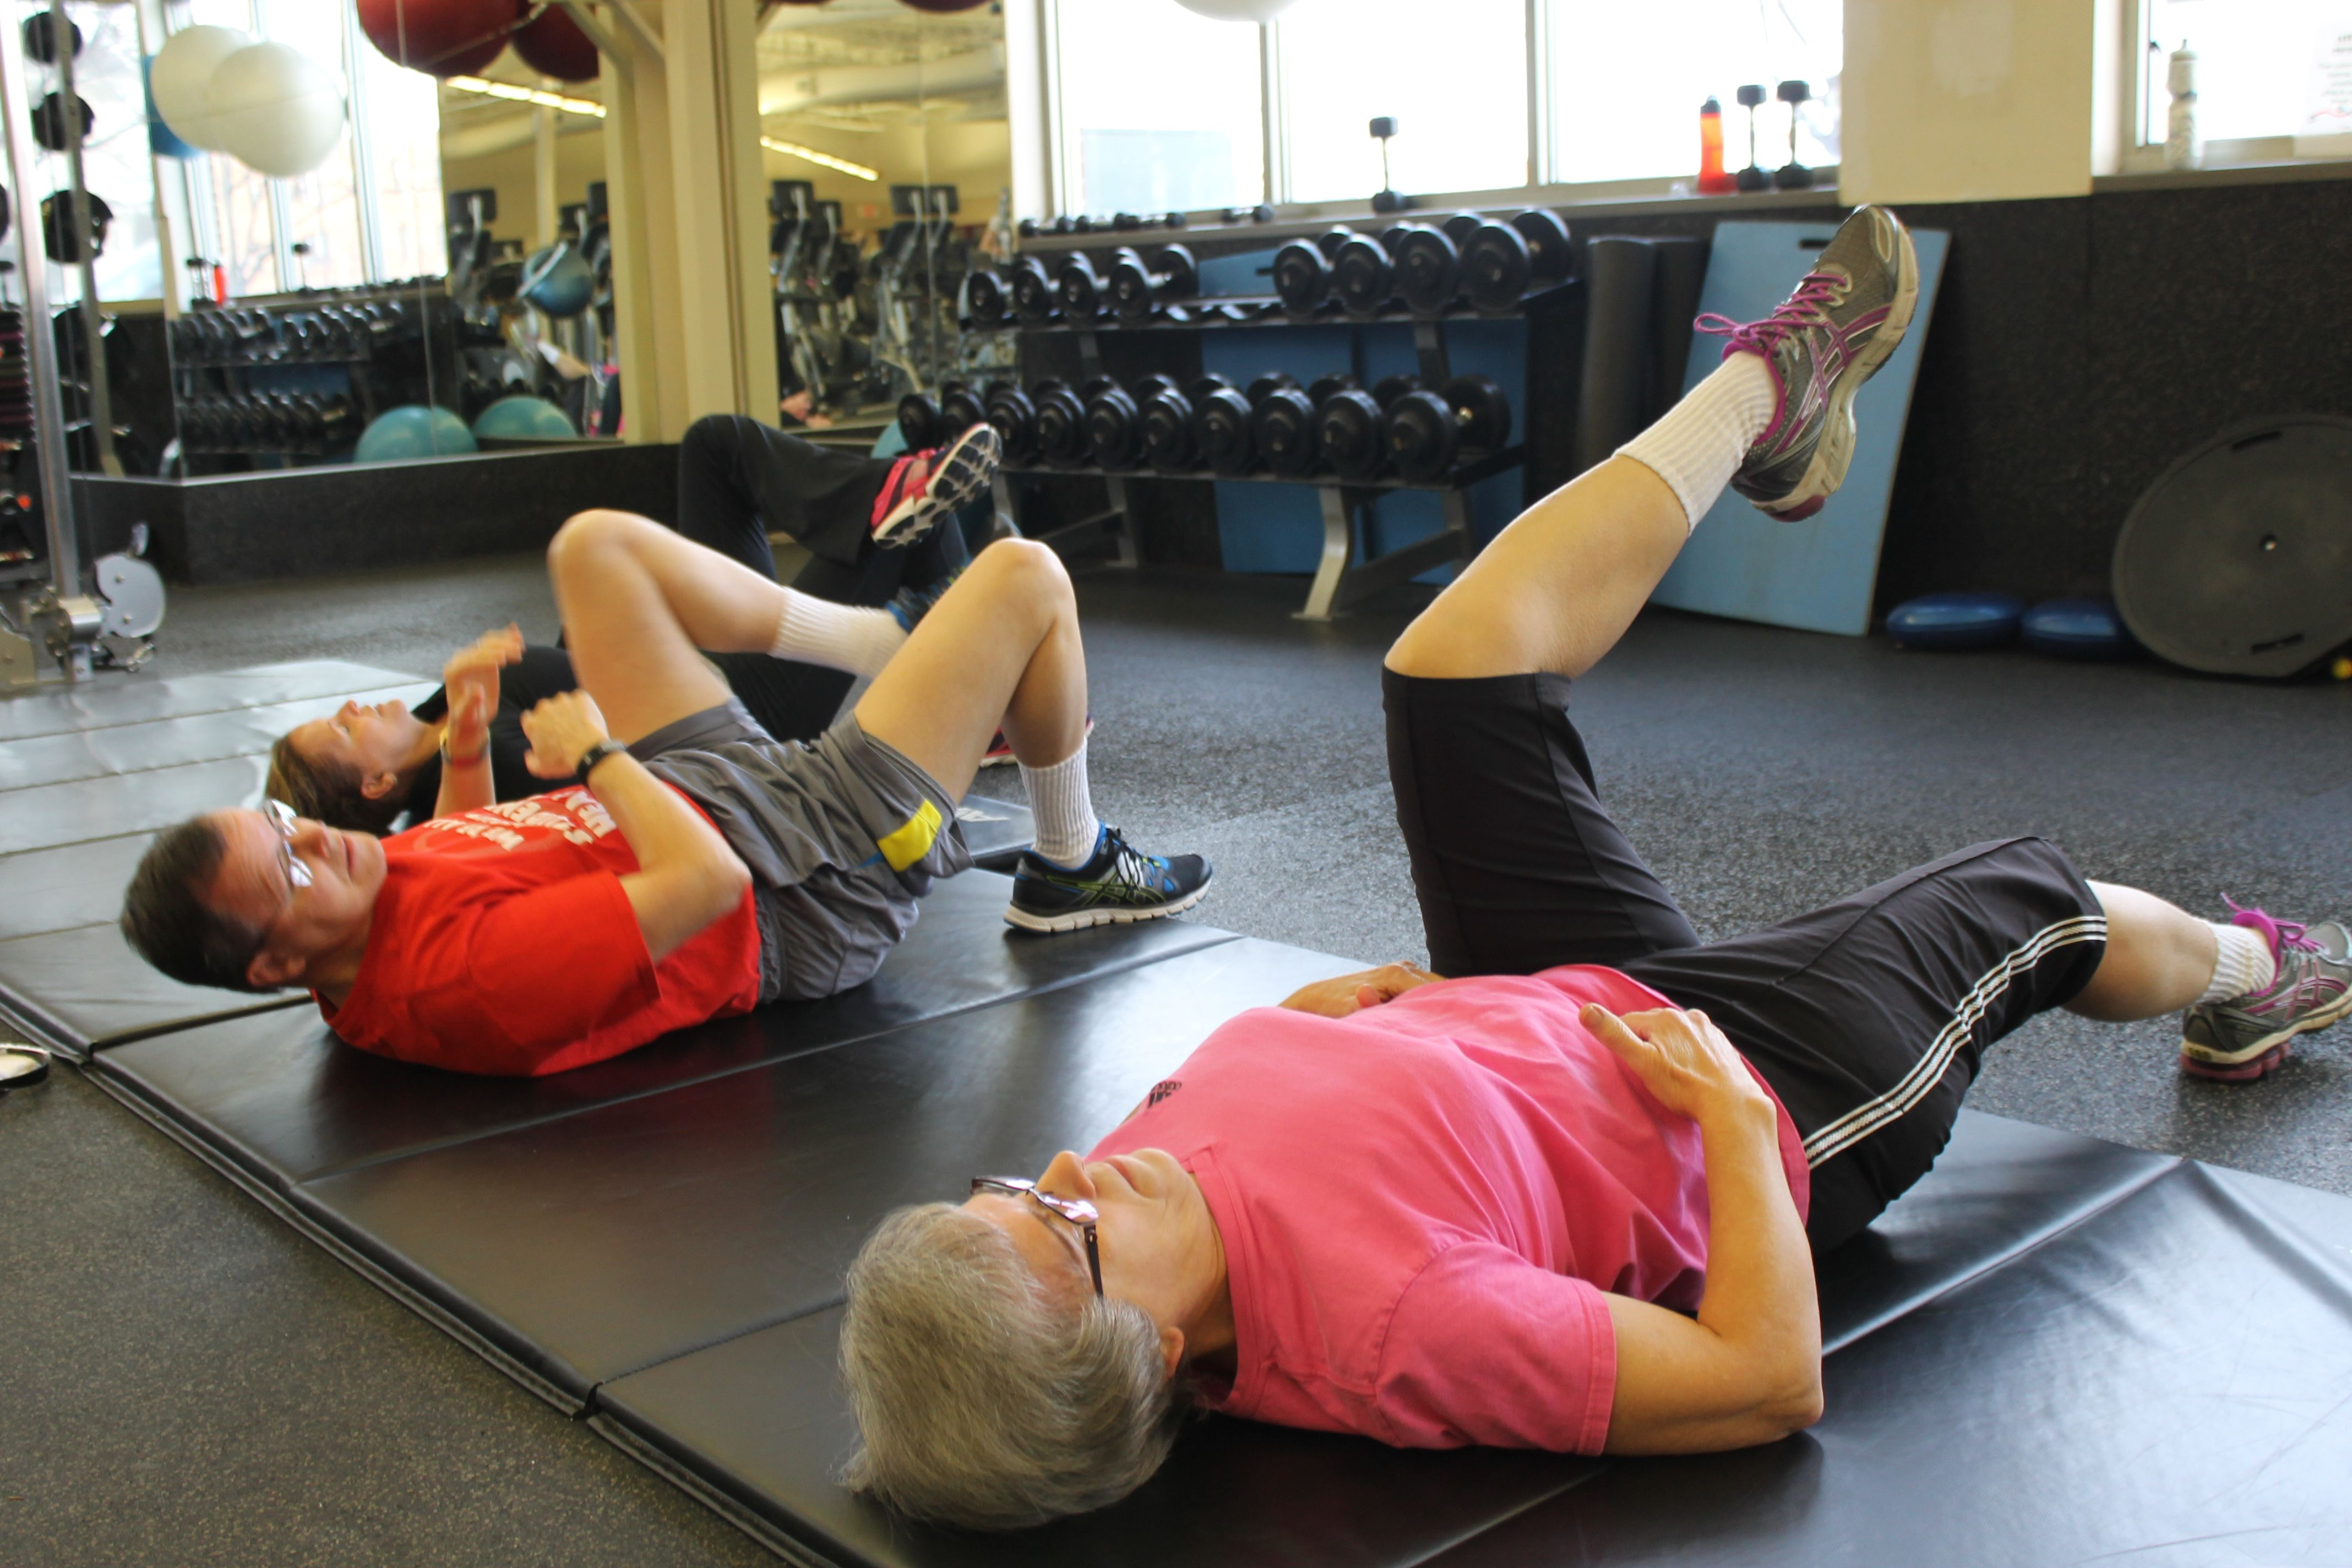 Gerry and Jane Kennedy stretch before exercising at the north Ames Racquet and Fitness Center on Wednesday Jan. 13, 2016. Photo by Grayson Schmidt/Ames Tribune  http://amestrib.com/news/resolution-23-years-and-counting